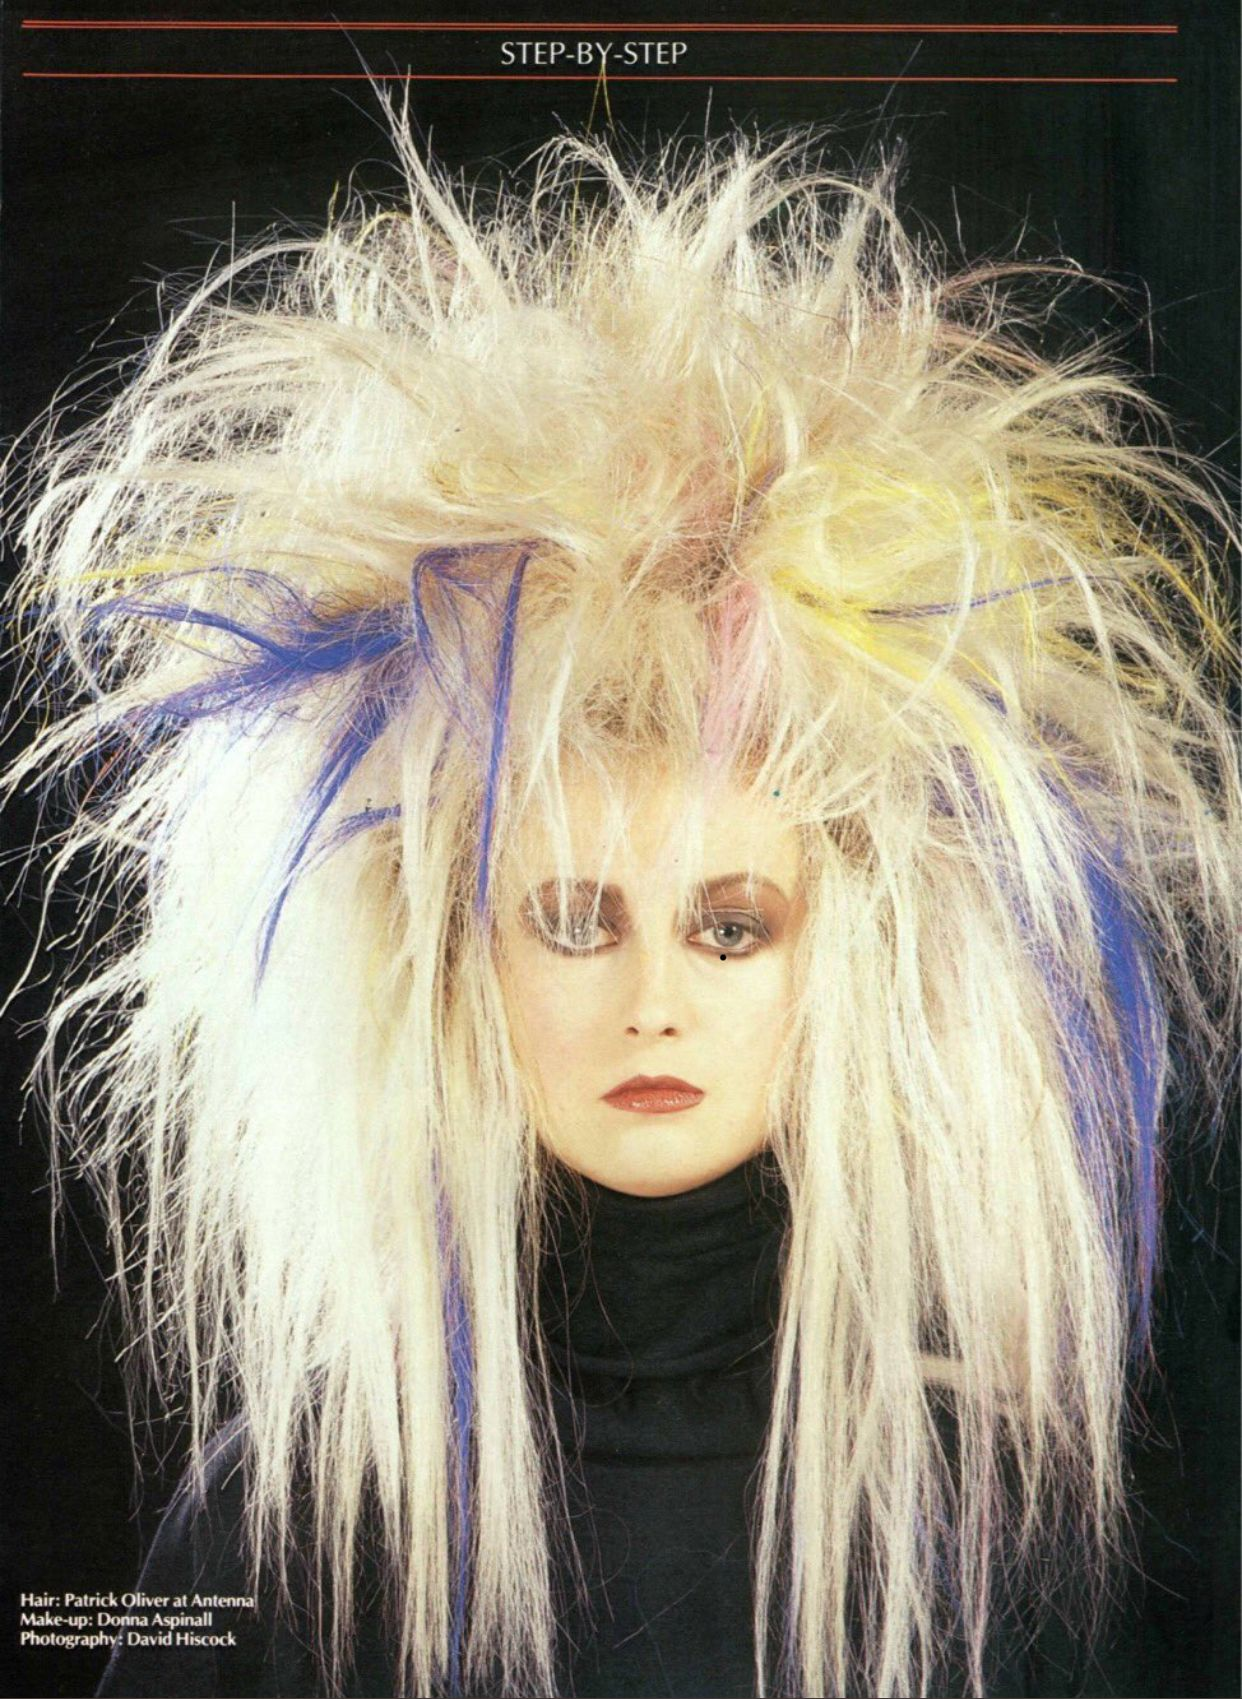 Classic Punk Look From The 80s Using Dome Monofibre Extensions